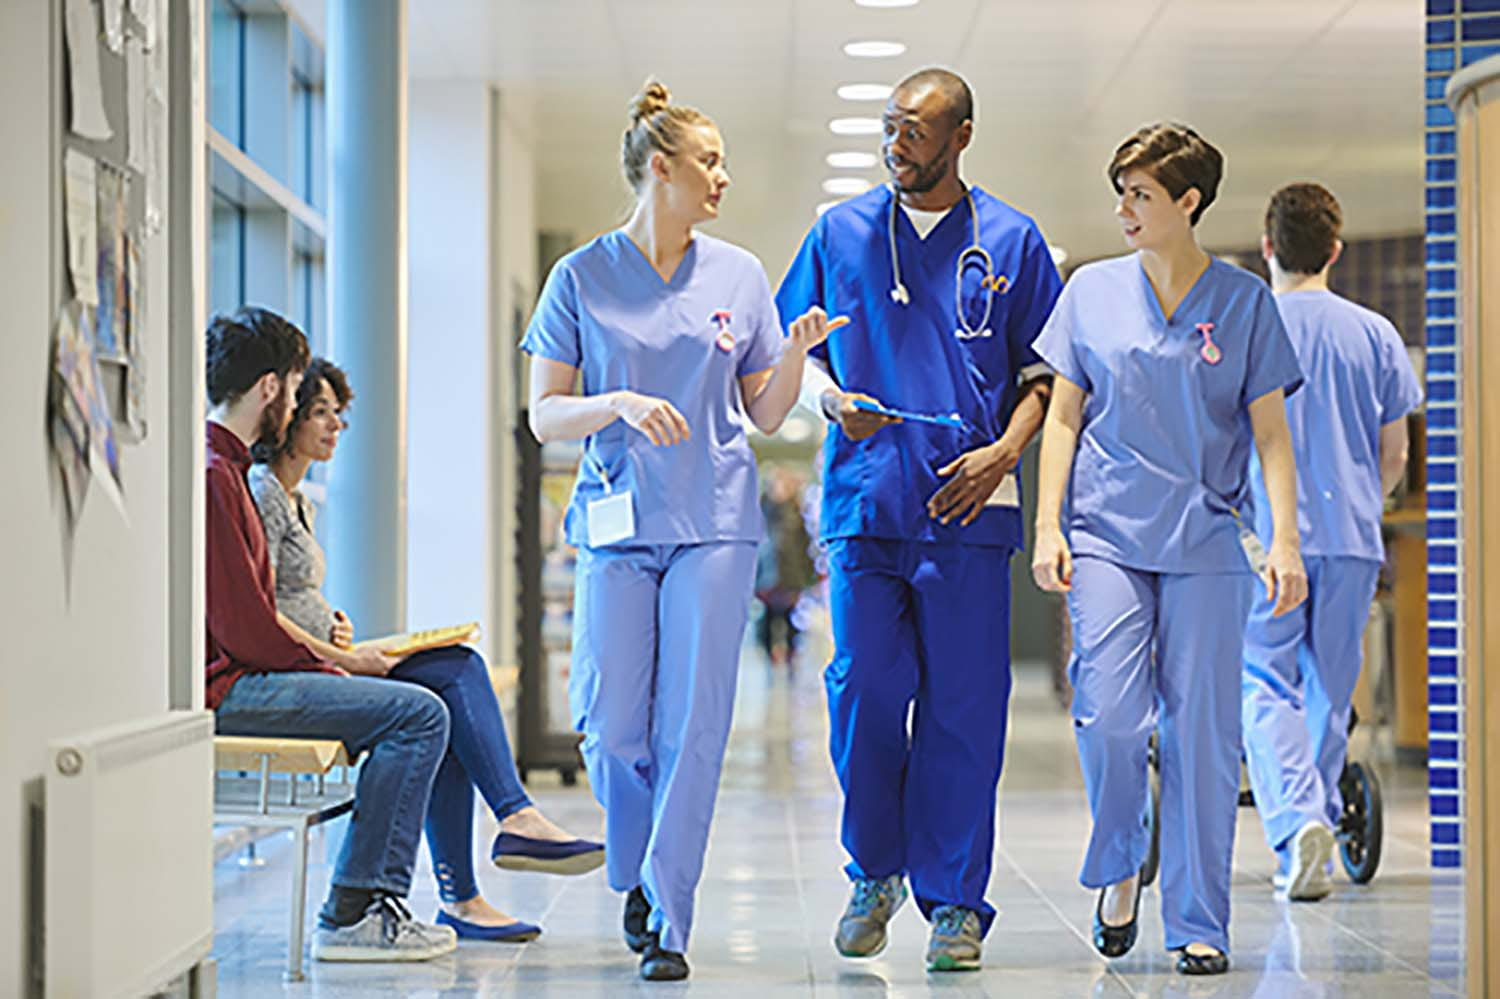 students walking down a hospital corridor